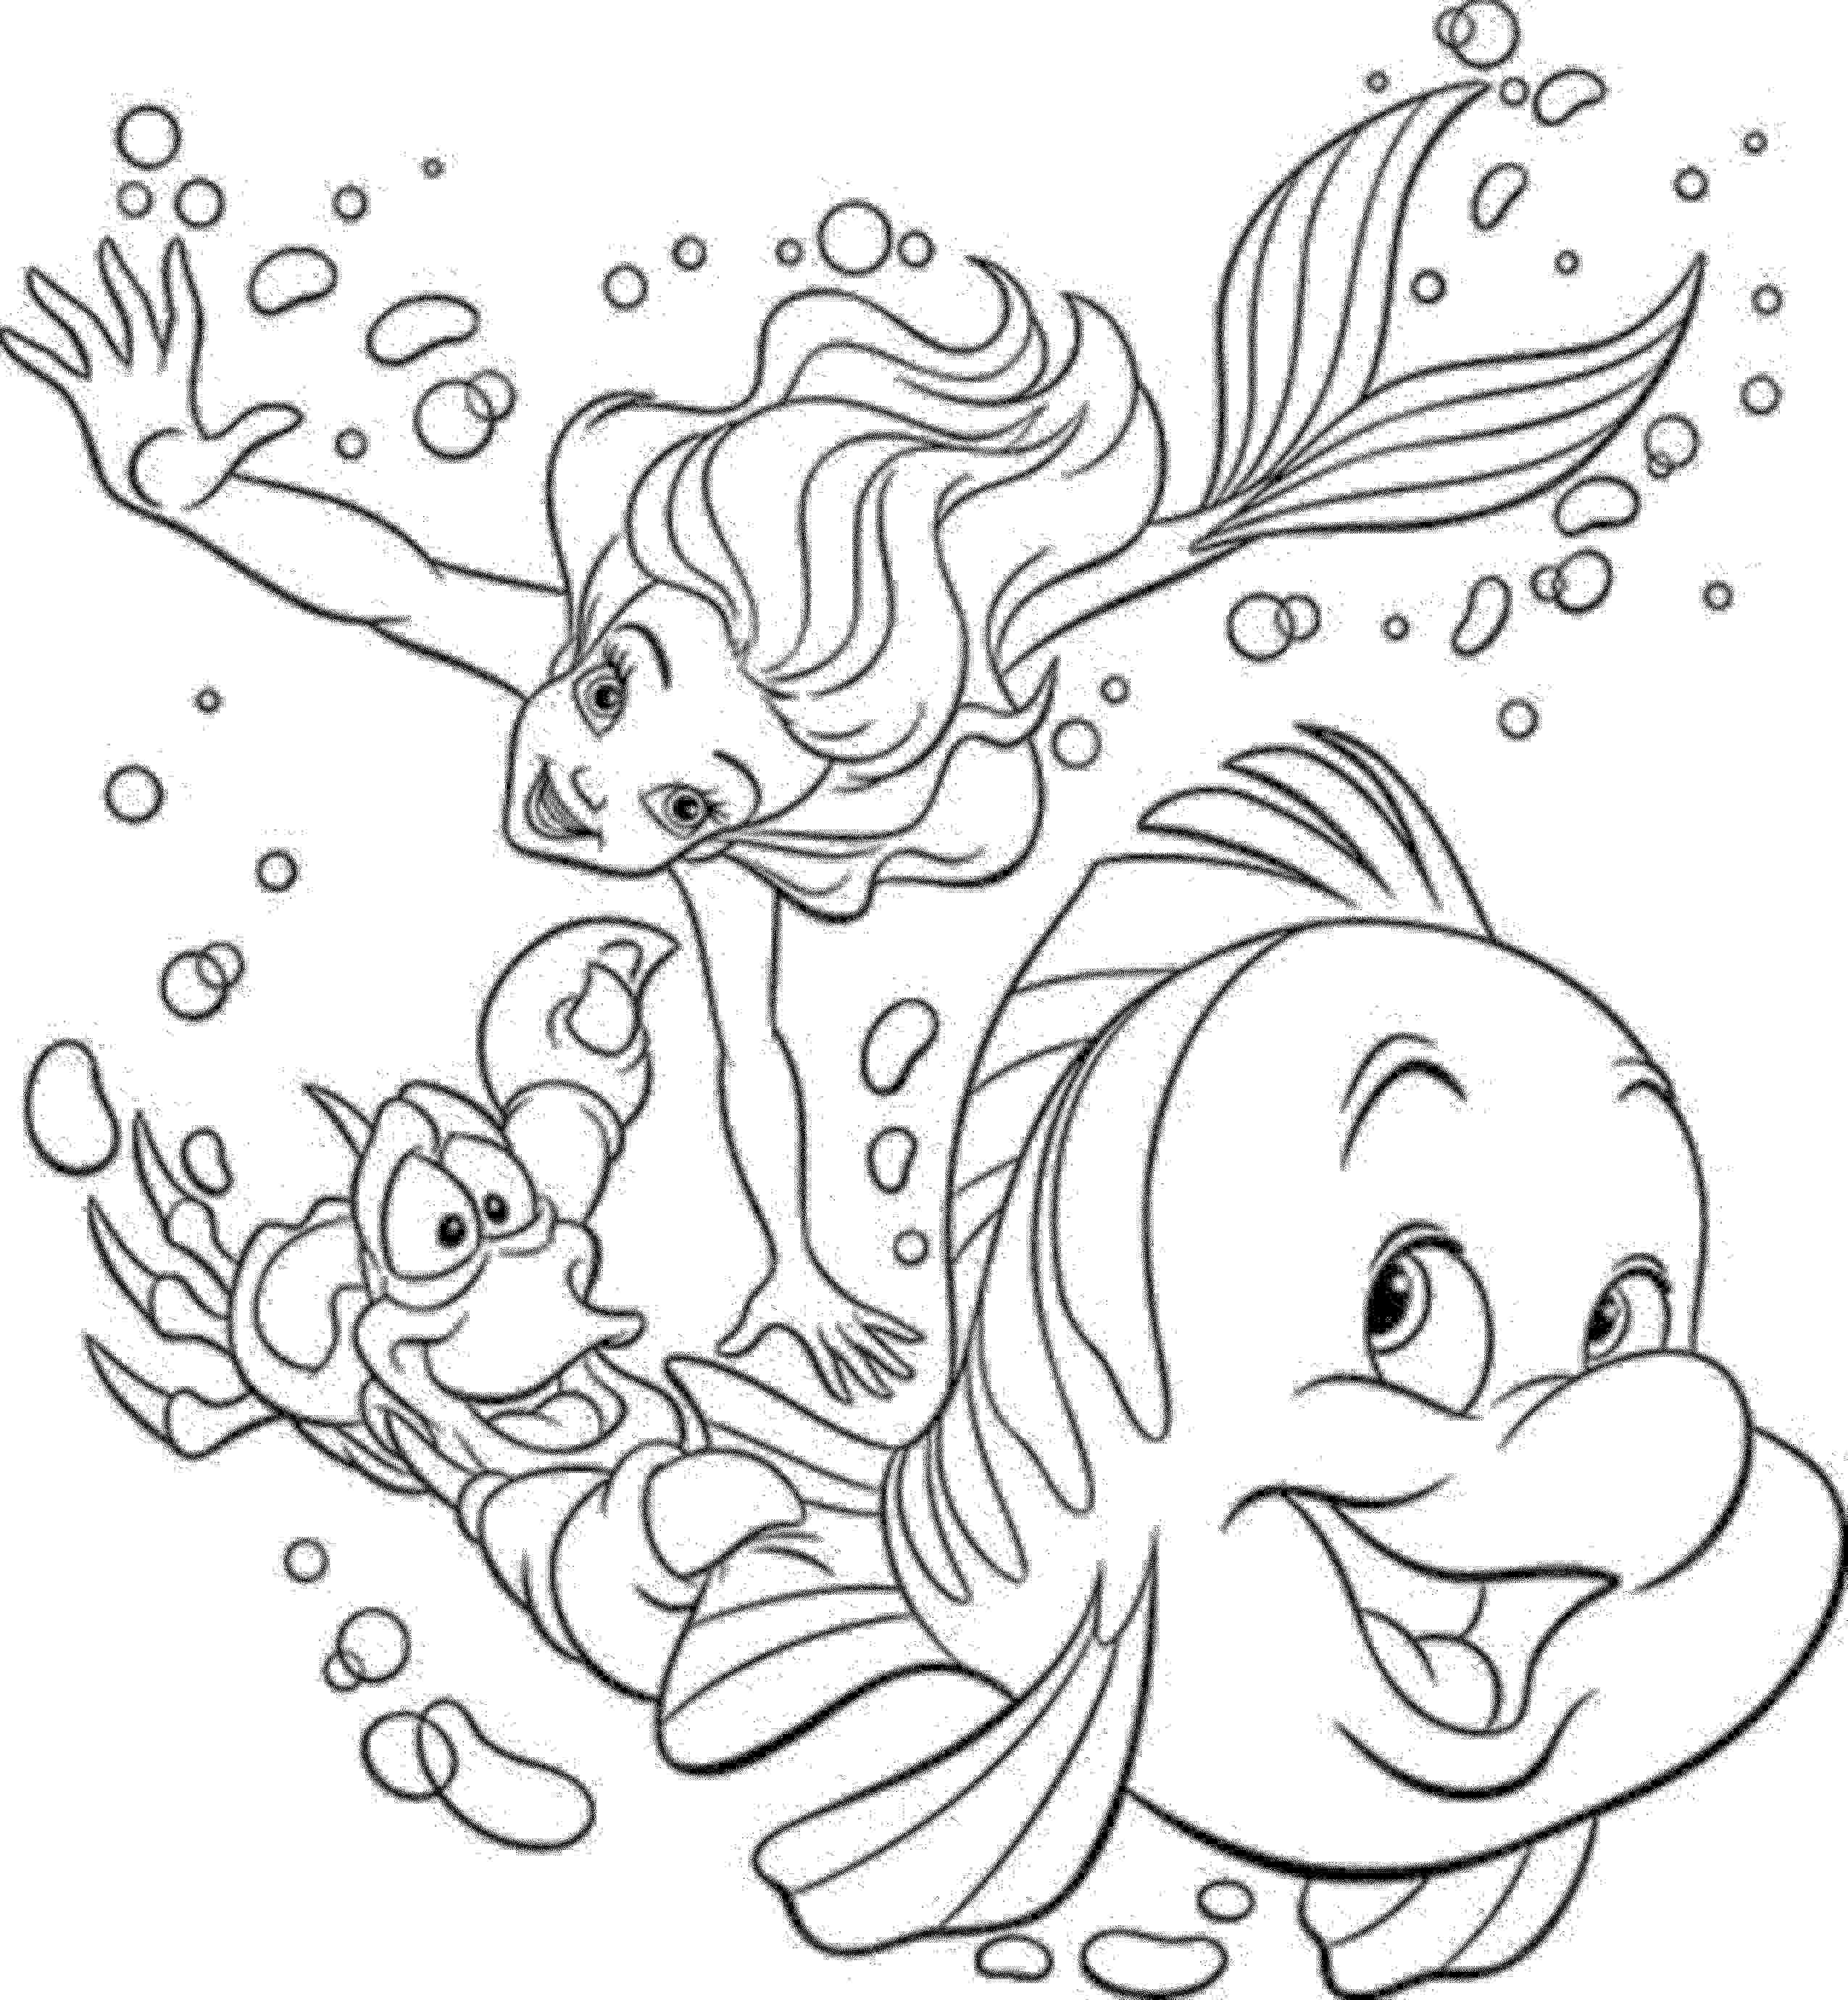 colouring pages for grade 2 coloring pages grade math color pages httpwww for pages grade 2 colouring